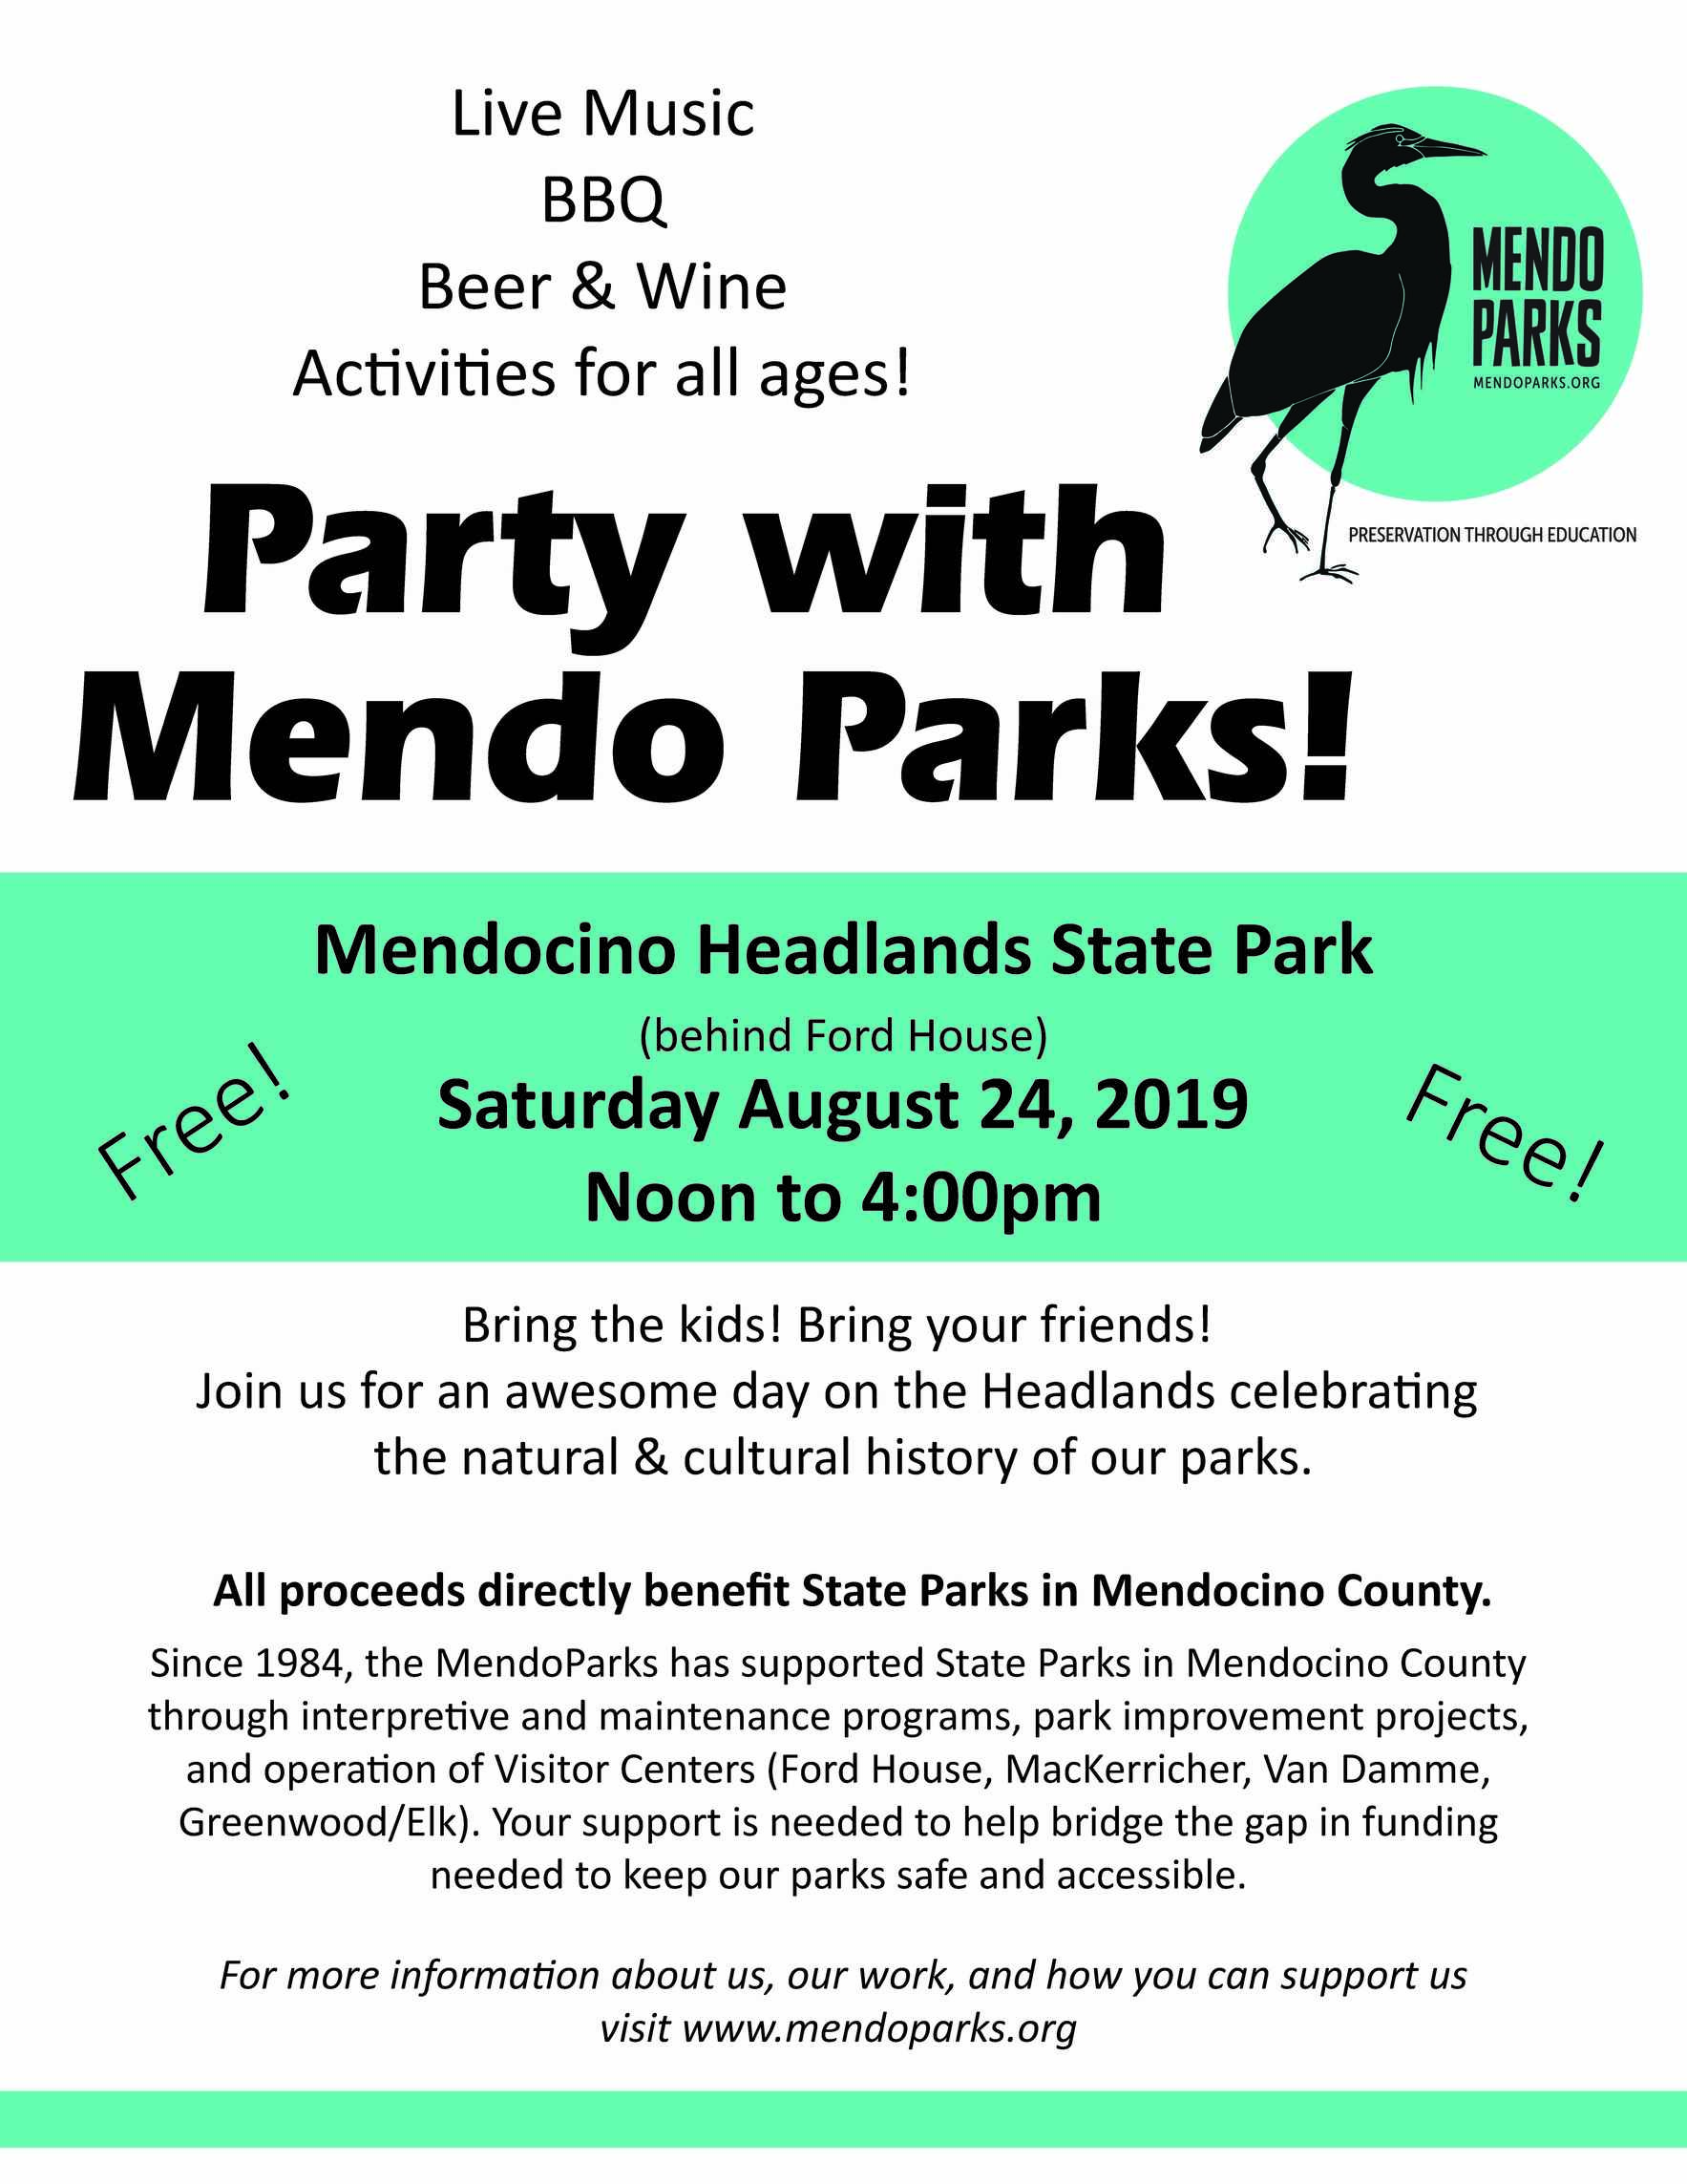 Party with MendoParks image